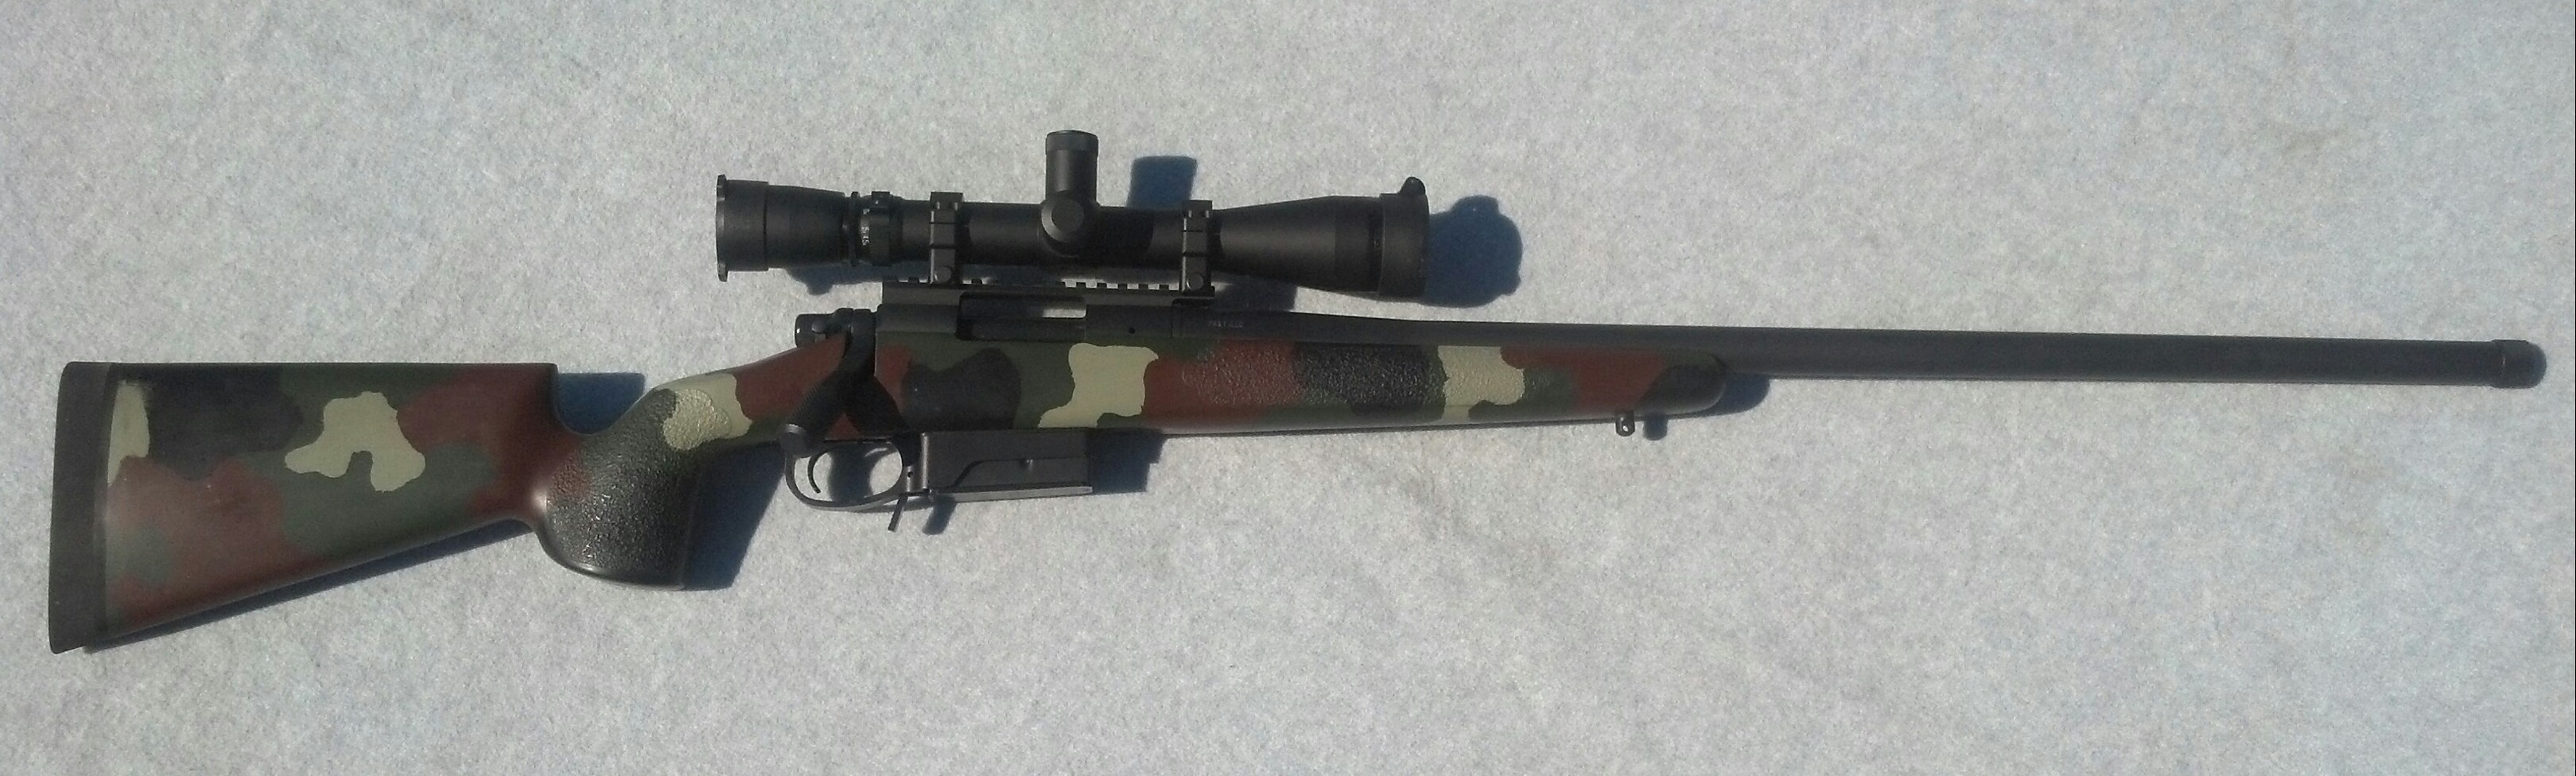 Game Scout Rifle